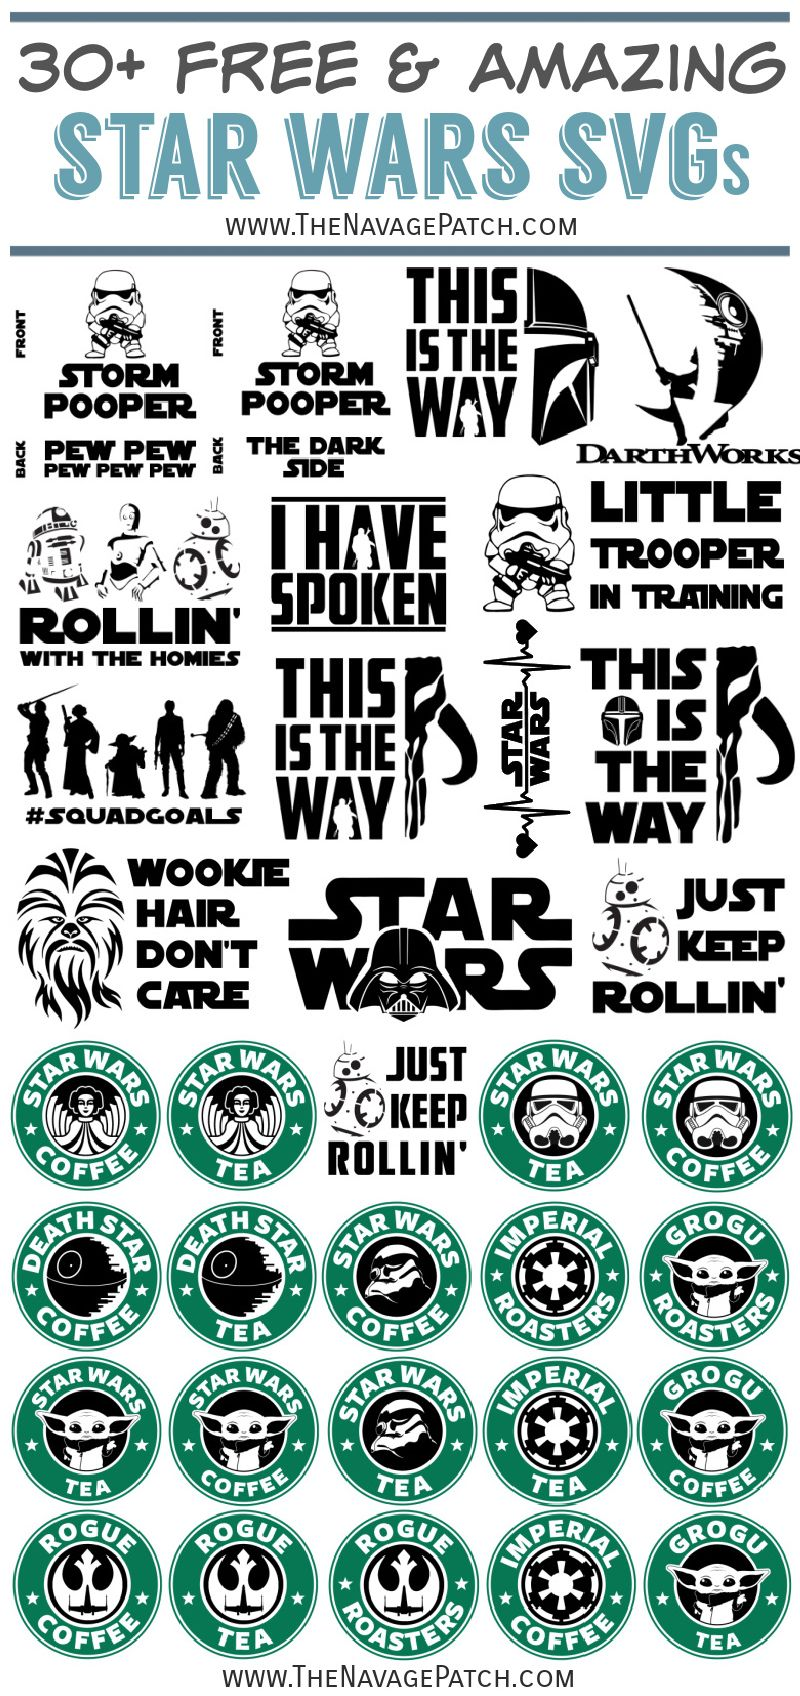 Free Star Wars SVGs - TheNavagePatch.com